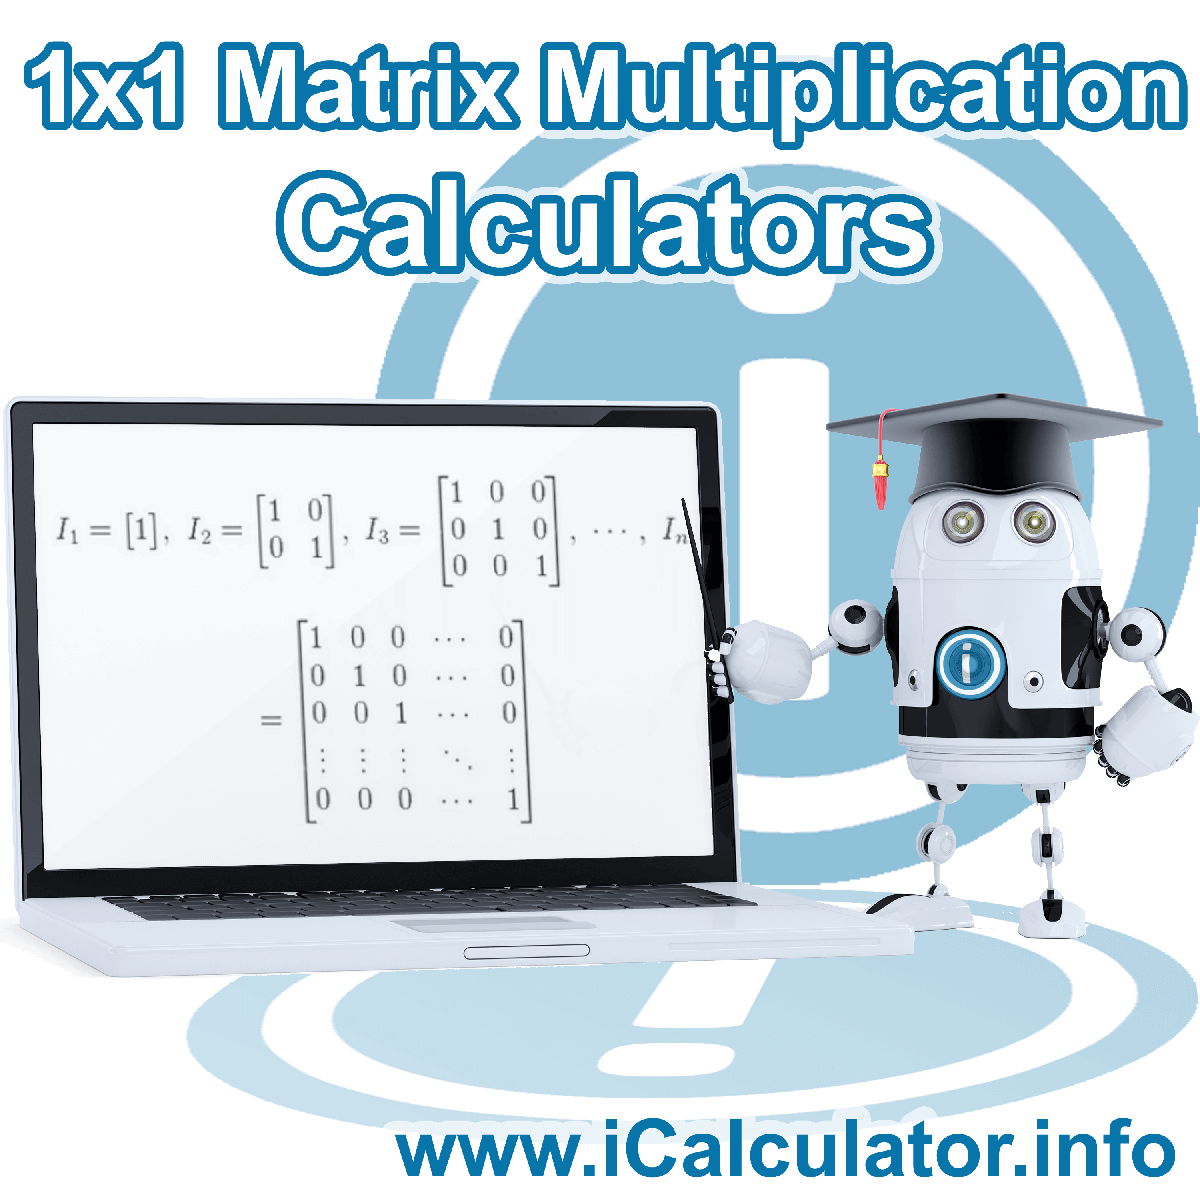 1x1 Matrix Multiplication Calculator. This image shows the properties and Matrix Multiplication formula for the 1x1 Matrix Multiplication Calculator